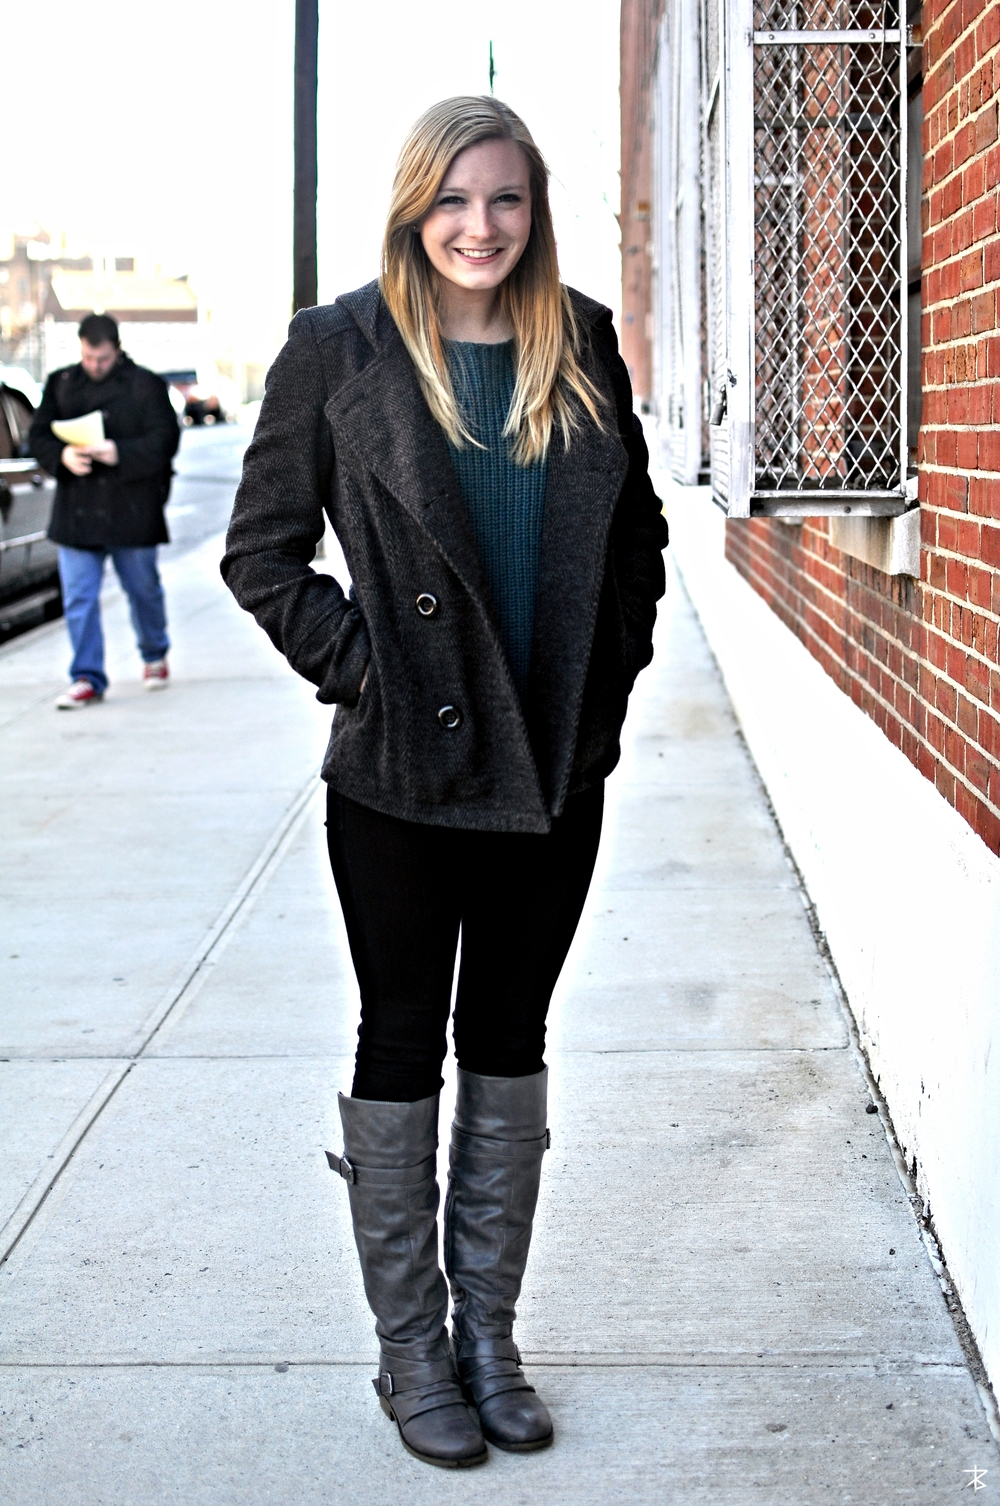 Erin M. | Fordham University  Tweed Jacket  Blue Crewneck Sweater  Black Tights  Brown Boots